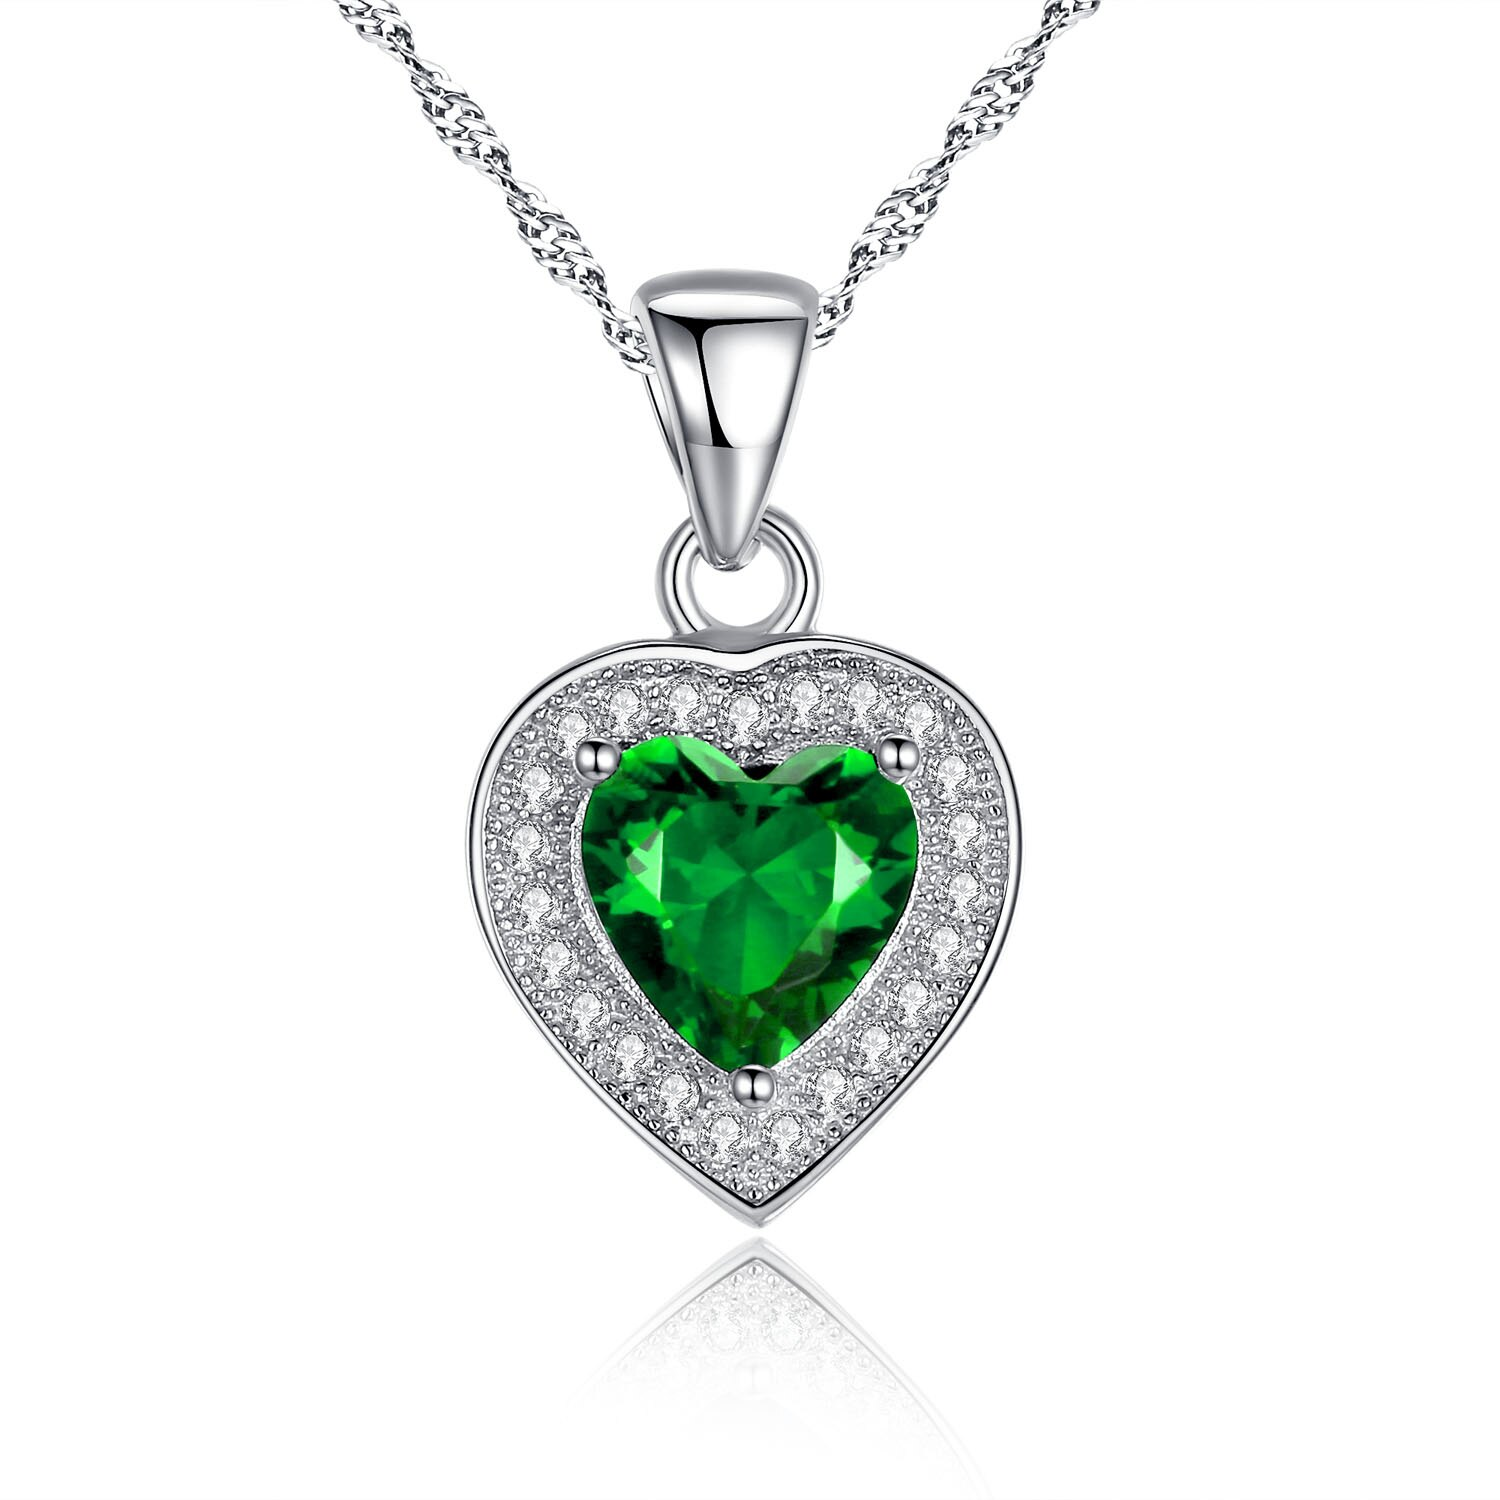 jewelry ministry courageous jewellery products eden heart necklace